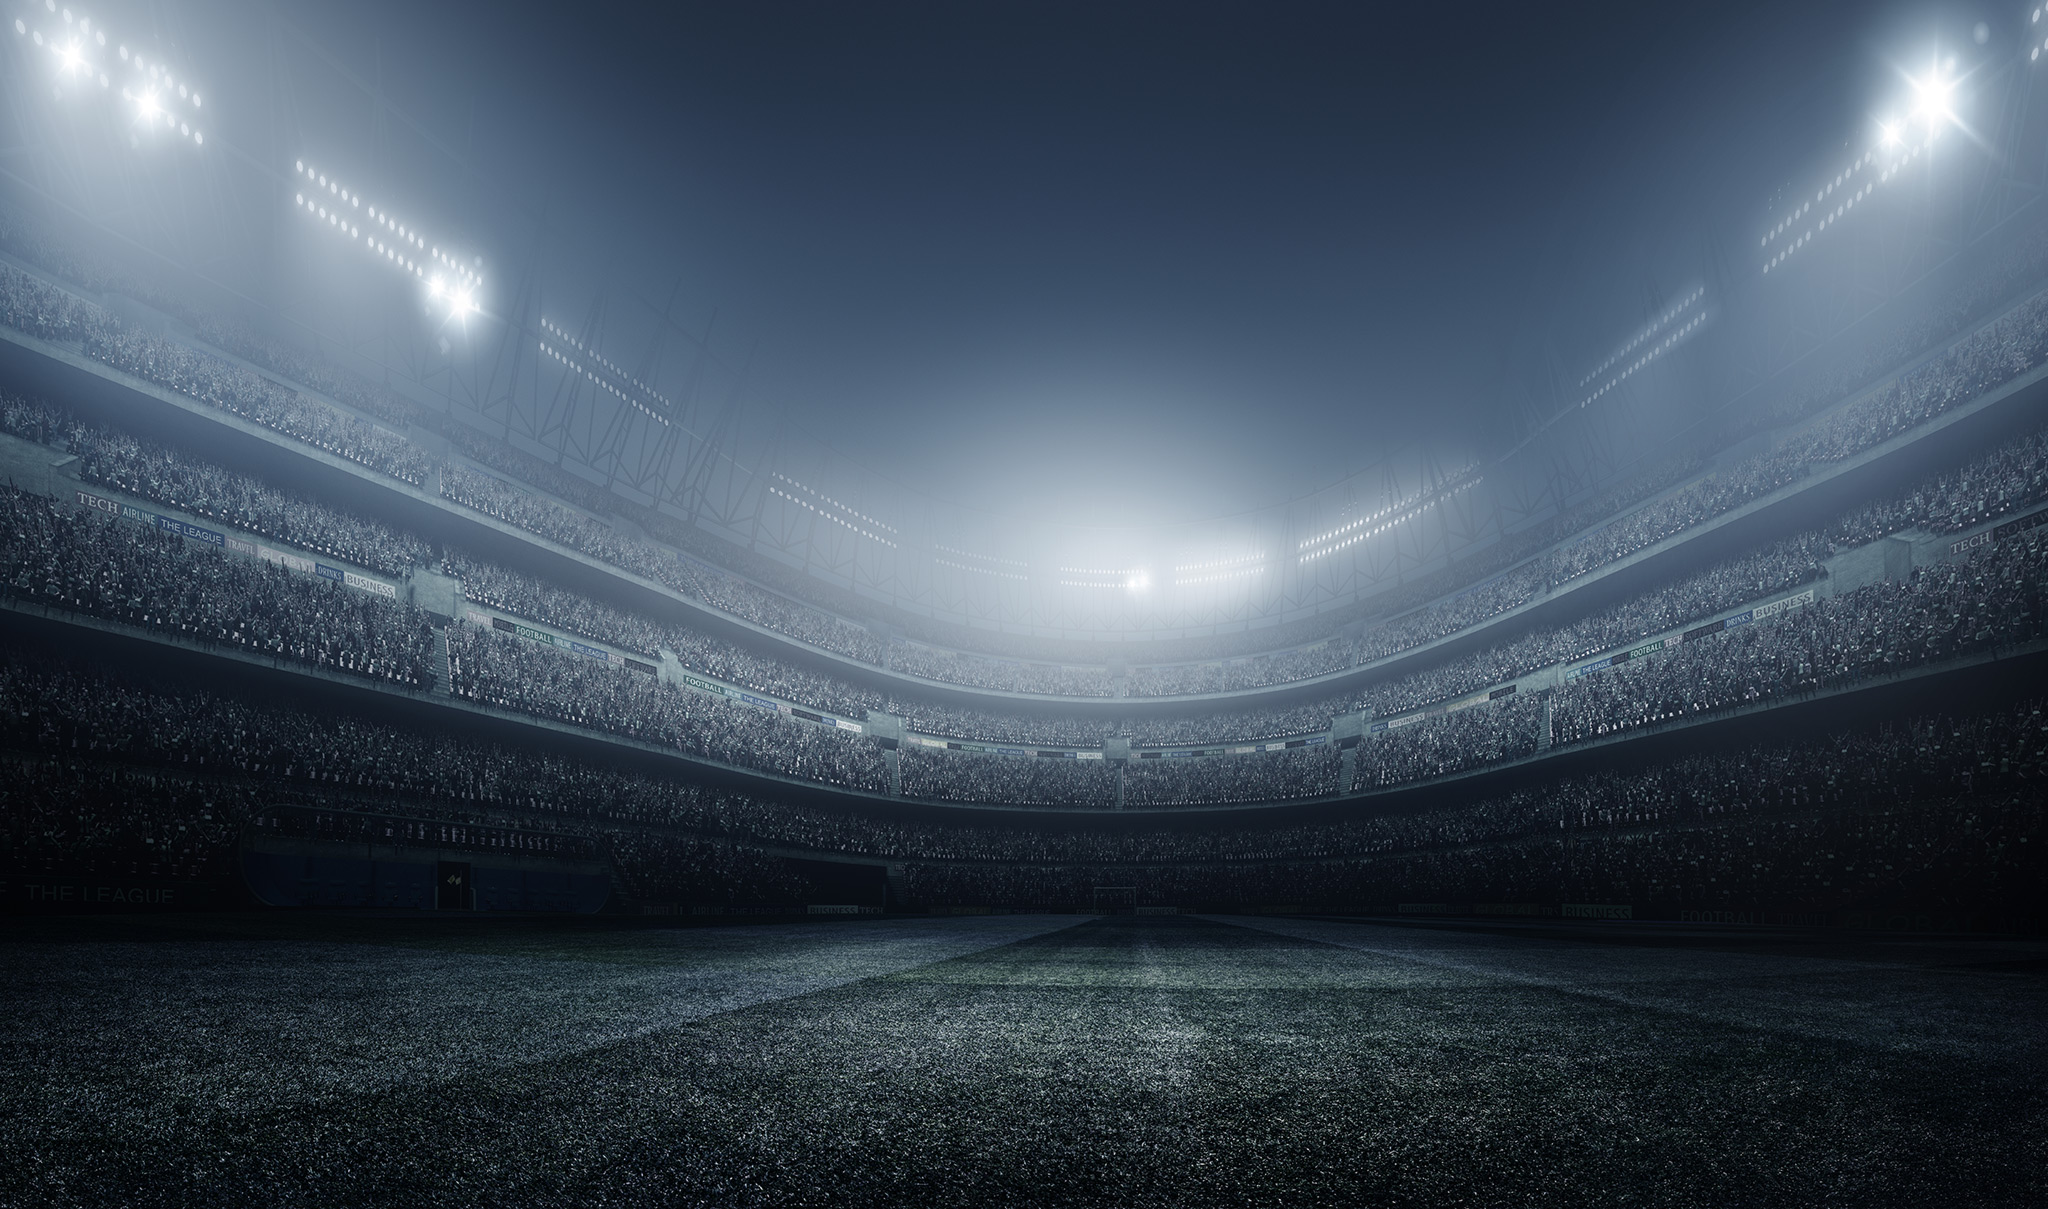 IFM - Football stadium background